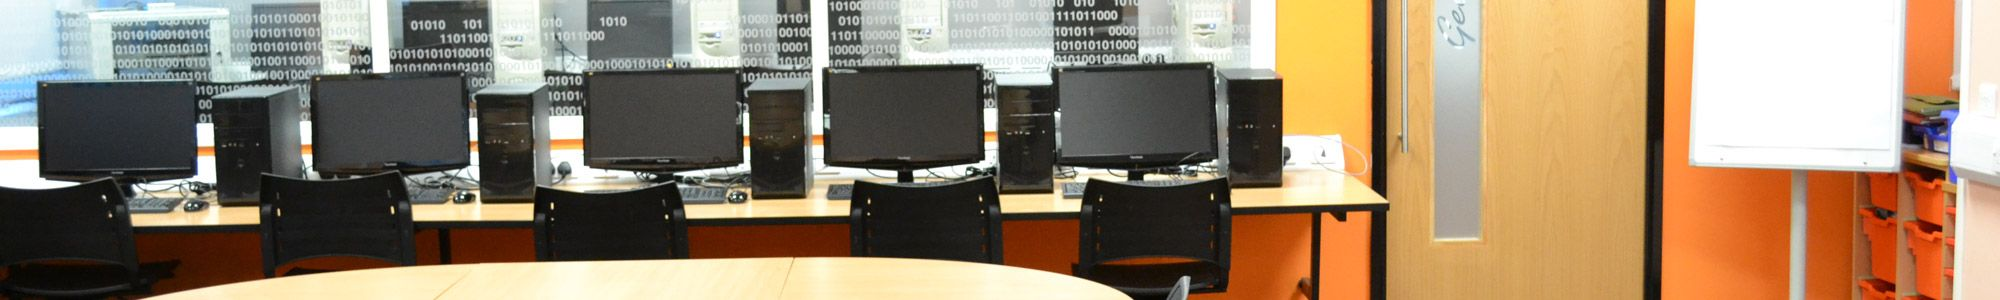 School computer classroom in Manchester